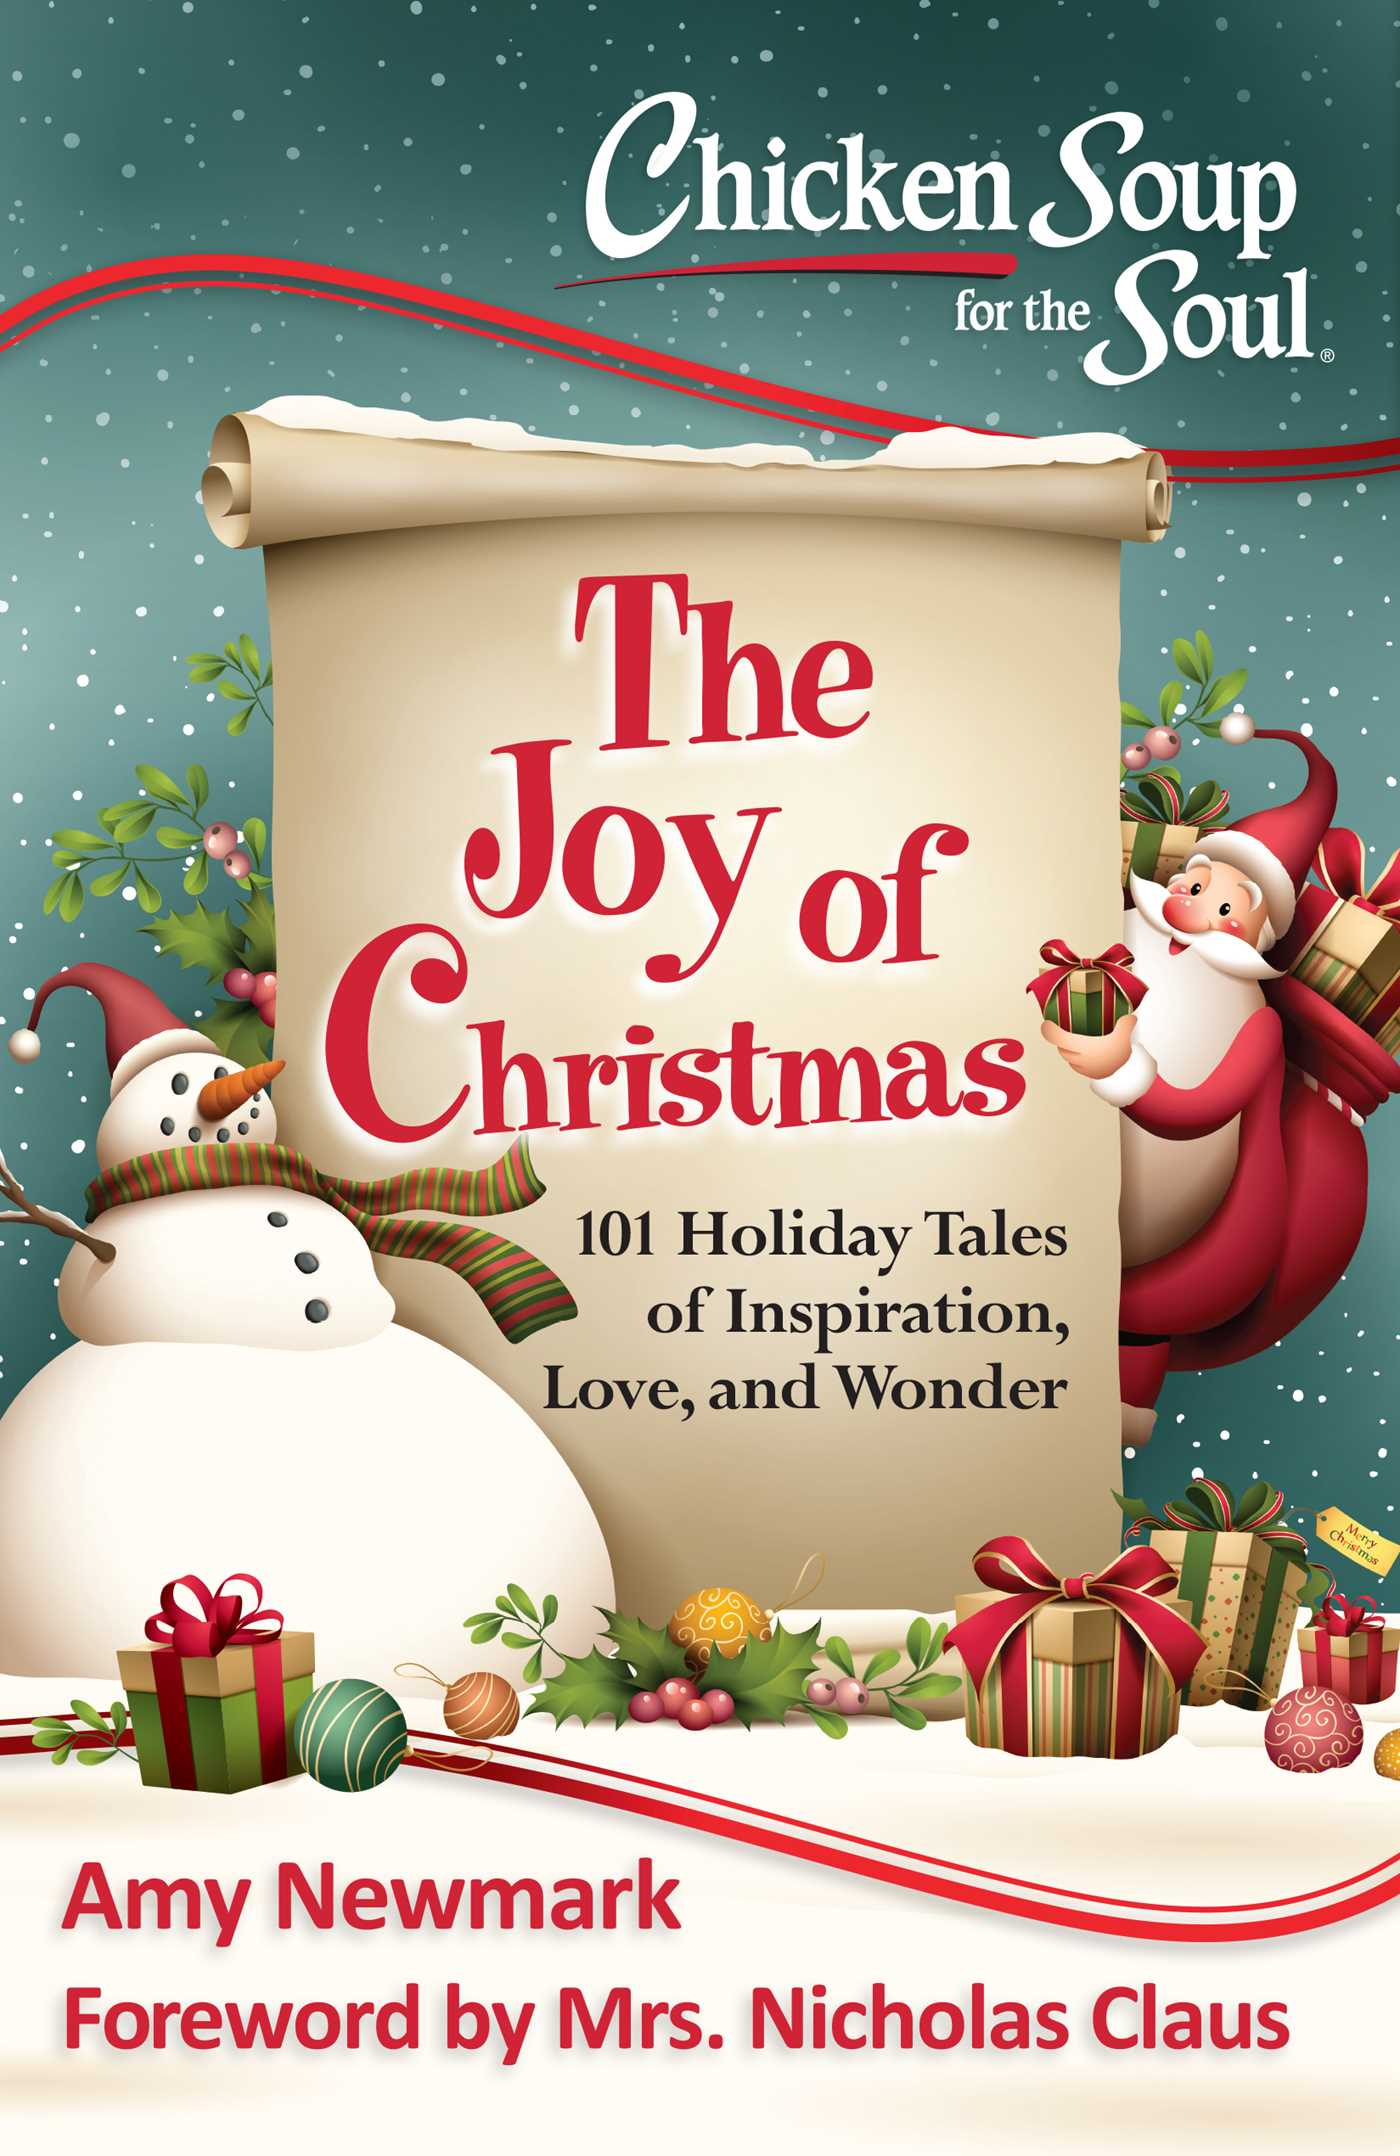 Chicken soup for the soul the joy of christmas 9781611599633 hr